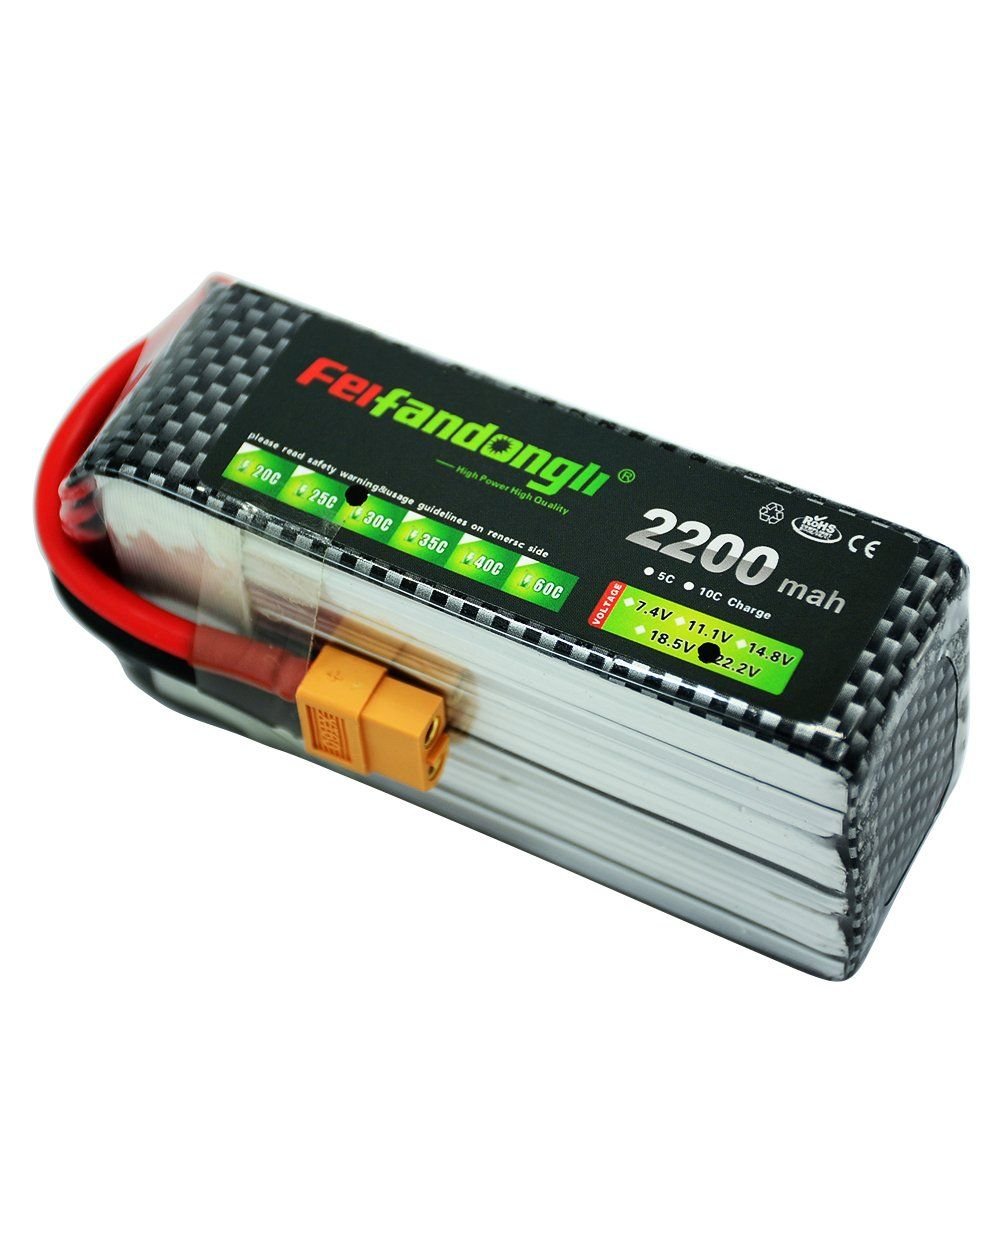 Feifandongli Rc Lipo Battery Pack 222v 6s 2200mah 30c With T Plug Lippo 3s 111v Tplug Connector For Dji F550 Airplane Helicopter Car Truck Boat Remote Control